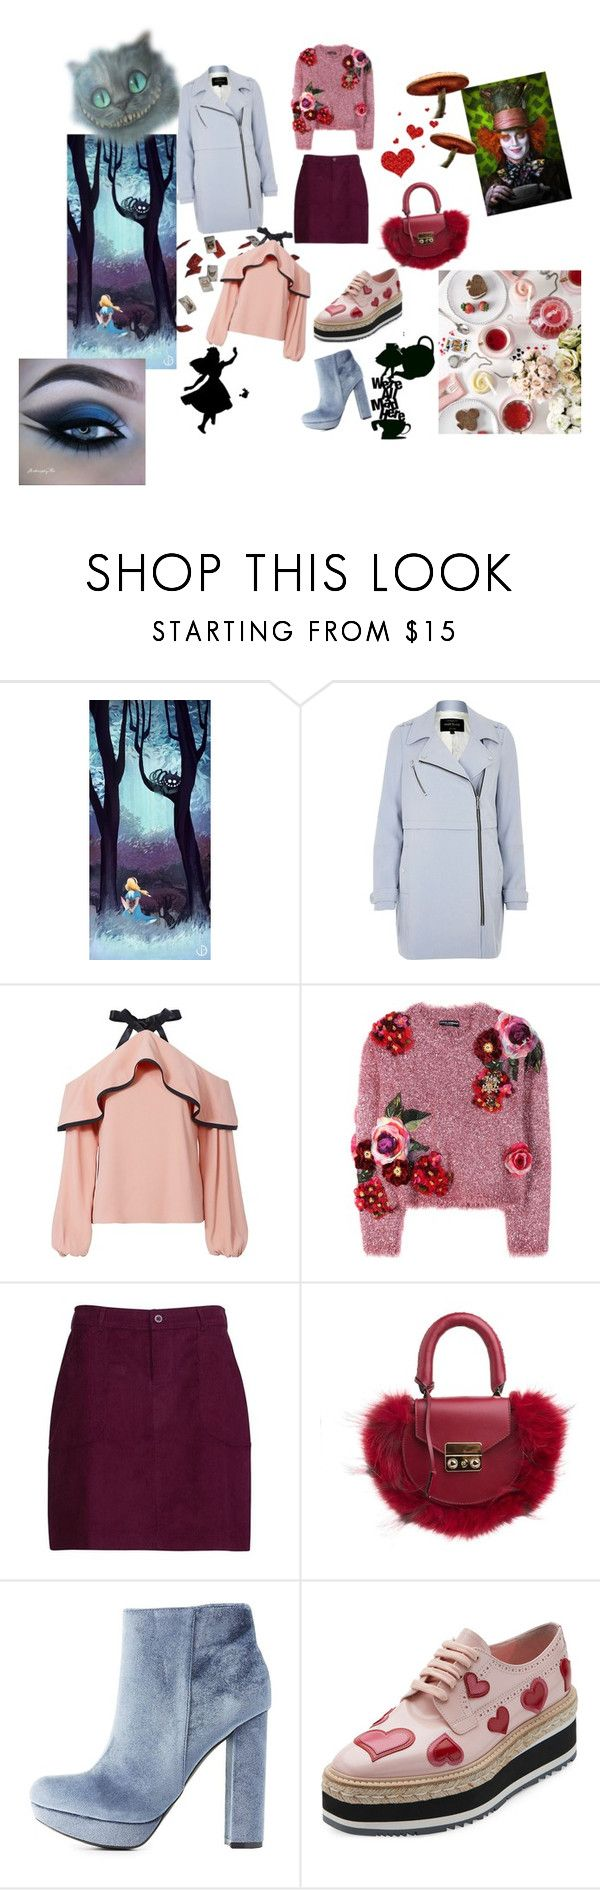 """Aliz csodaországban fantasy/ Alice in wonderland fantasy"" by sgtpepperdine ❤ liked on Polyvore featuring Burton, Ask Alice, River Island, Alexis, Dolce&Gabbana, SALAR, Charlotte Russe and Prada"